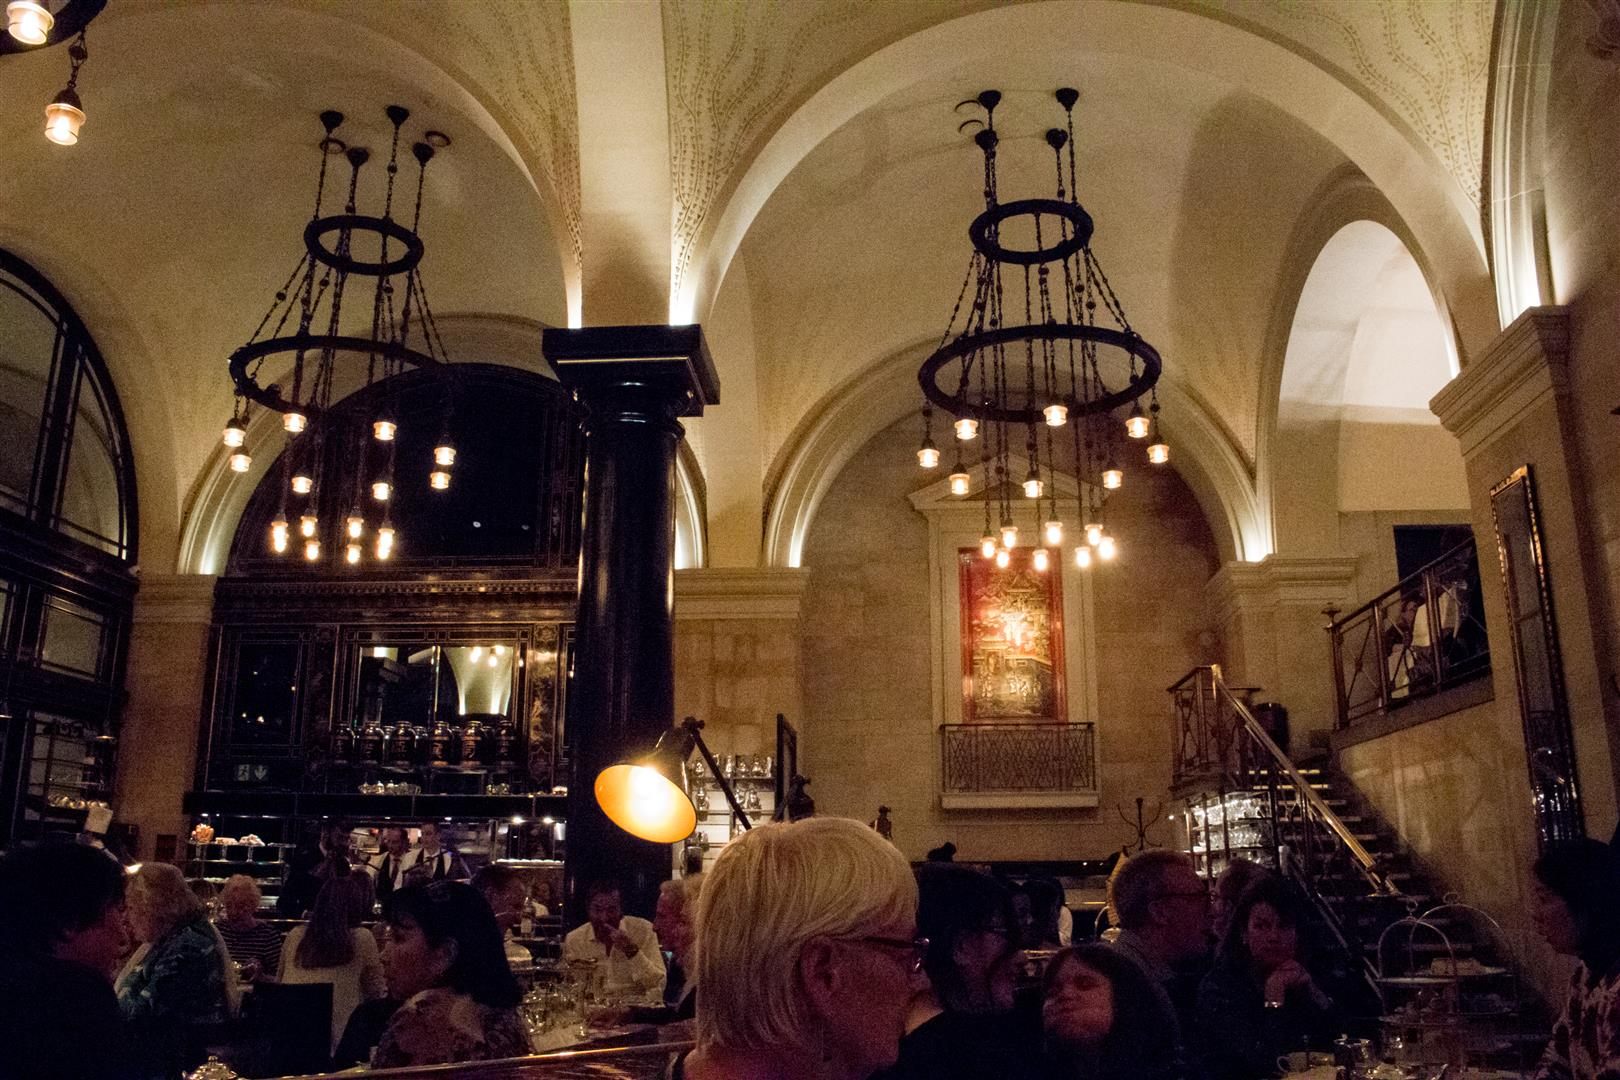 Admittedly, with the amount of people that night, I felt the arched ceilings amplified everyone's chatter. We were still able to comfortably speak across the table though!